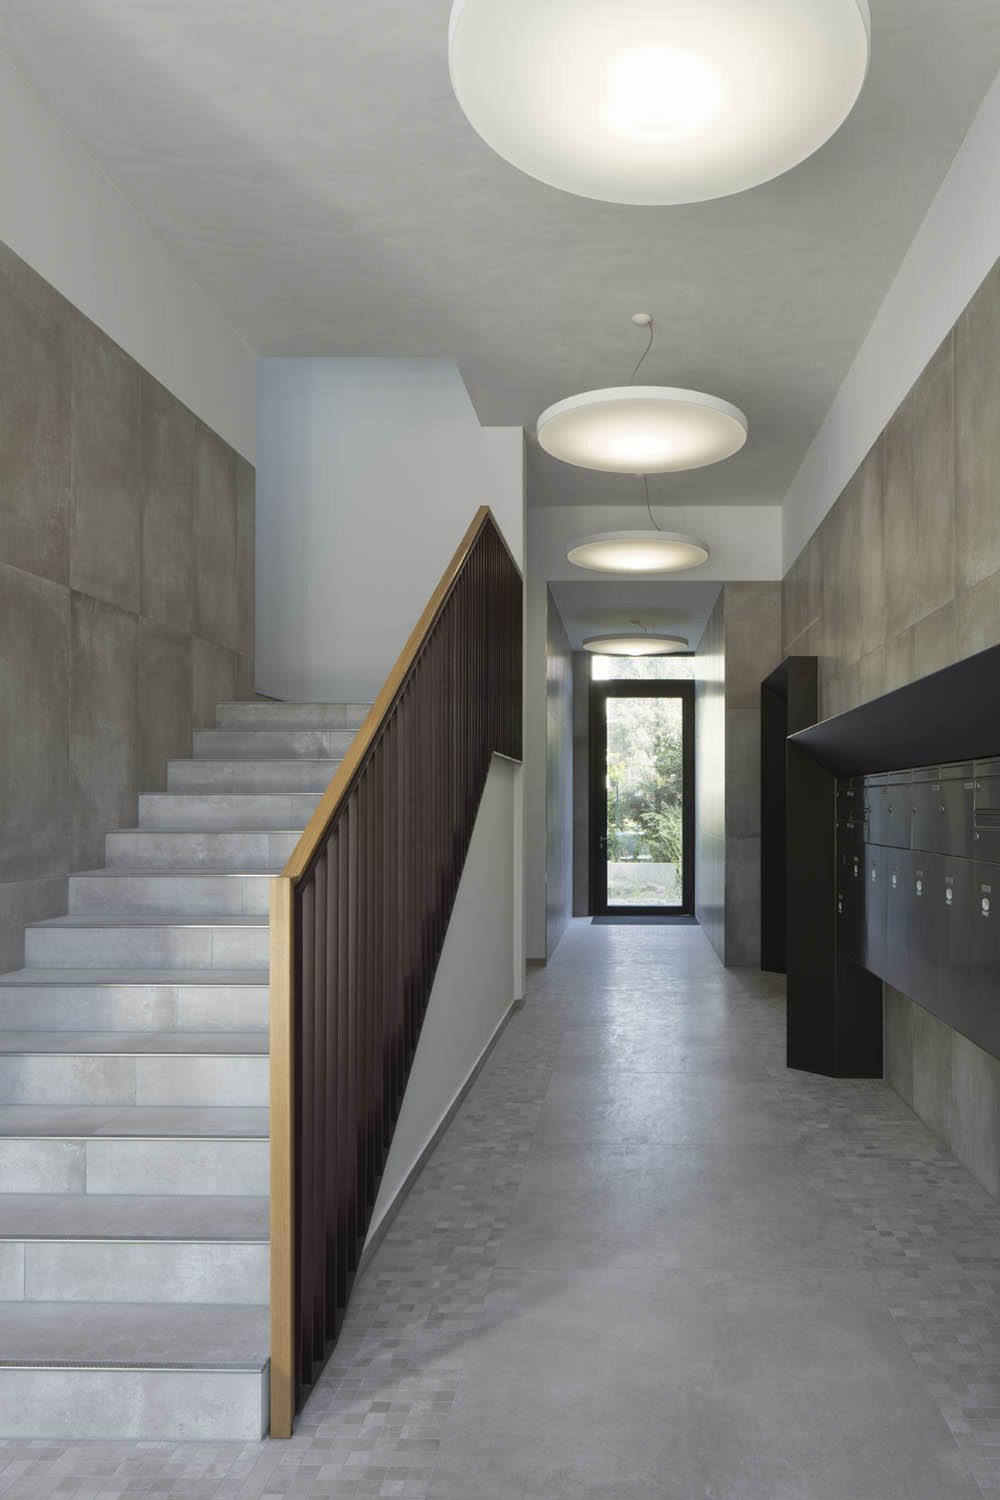 The interior design corresponds with the material and colour choices of the surface Werner Huthmacher